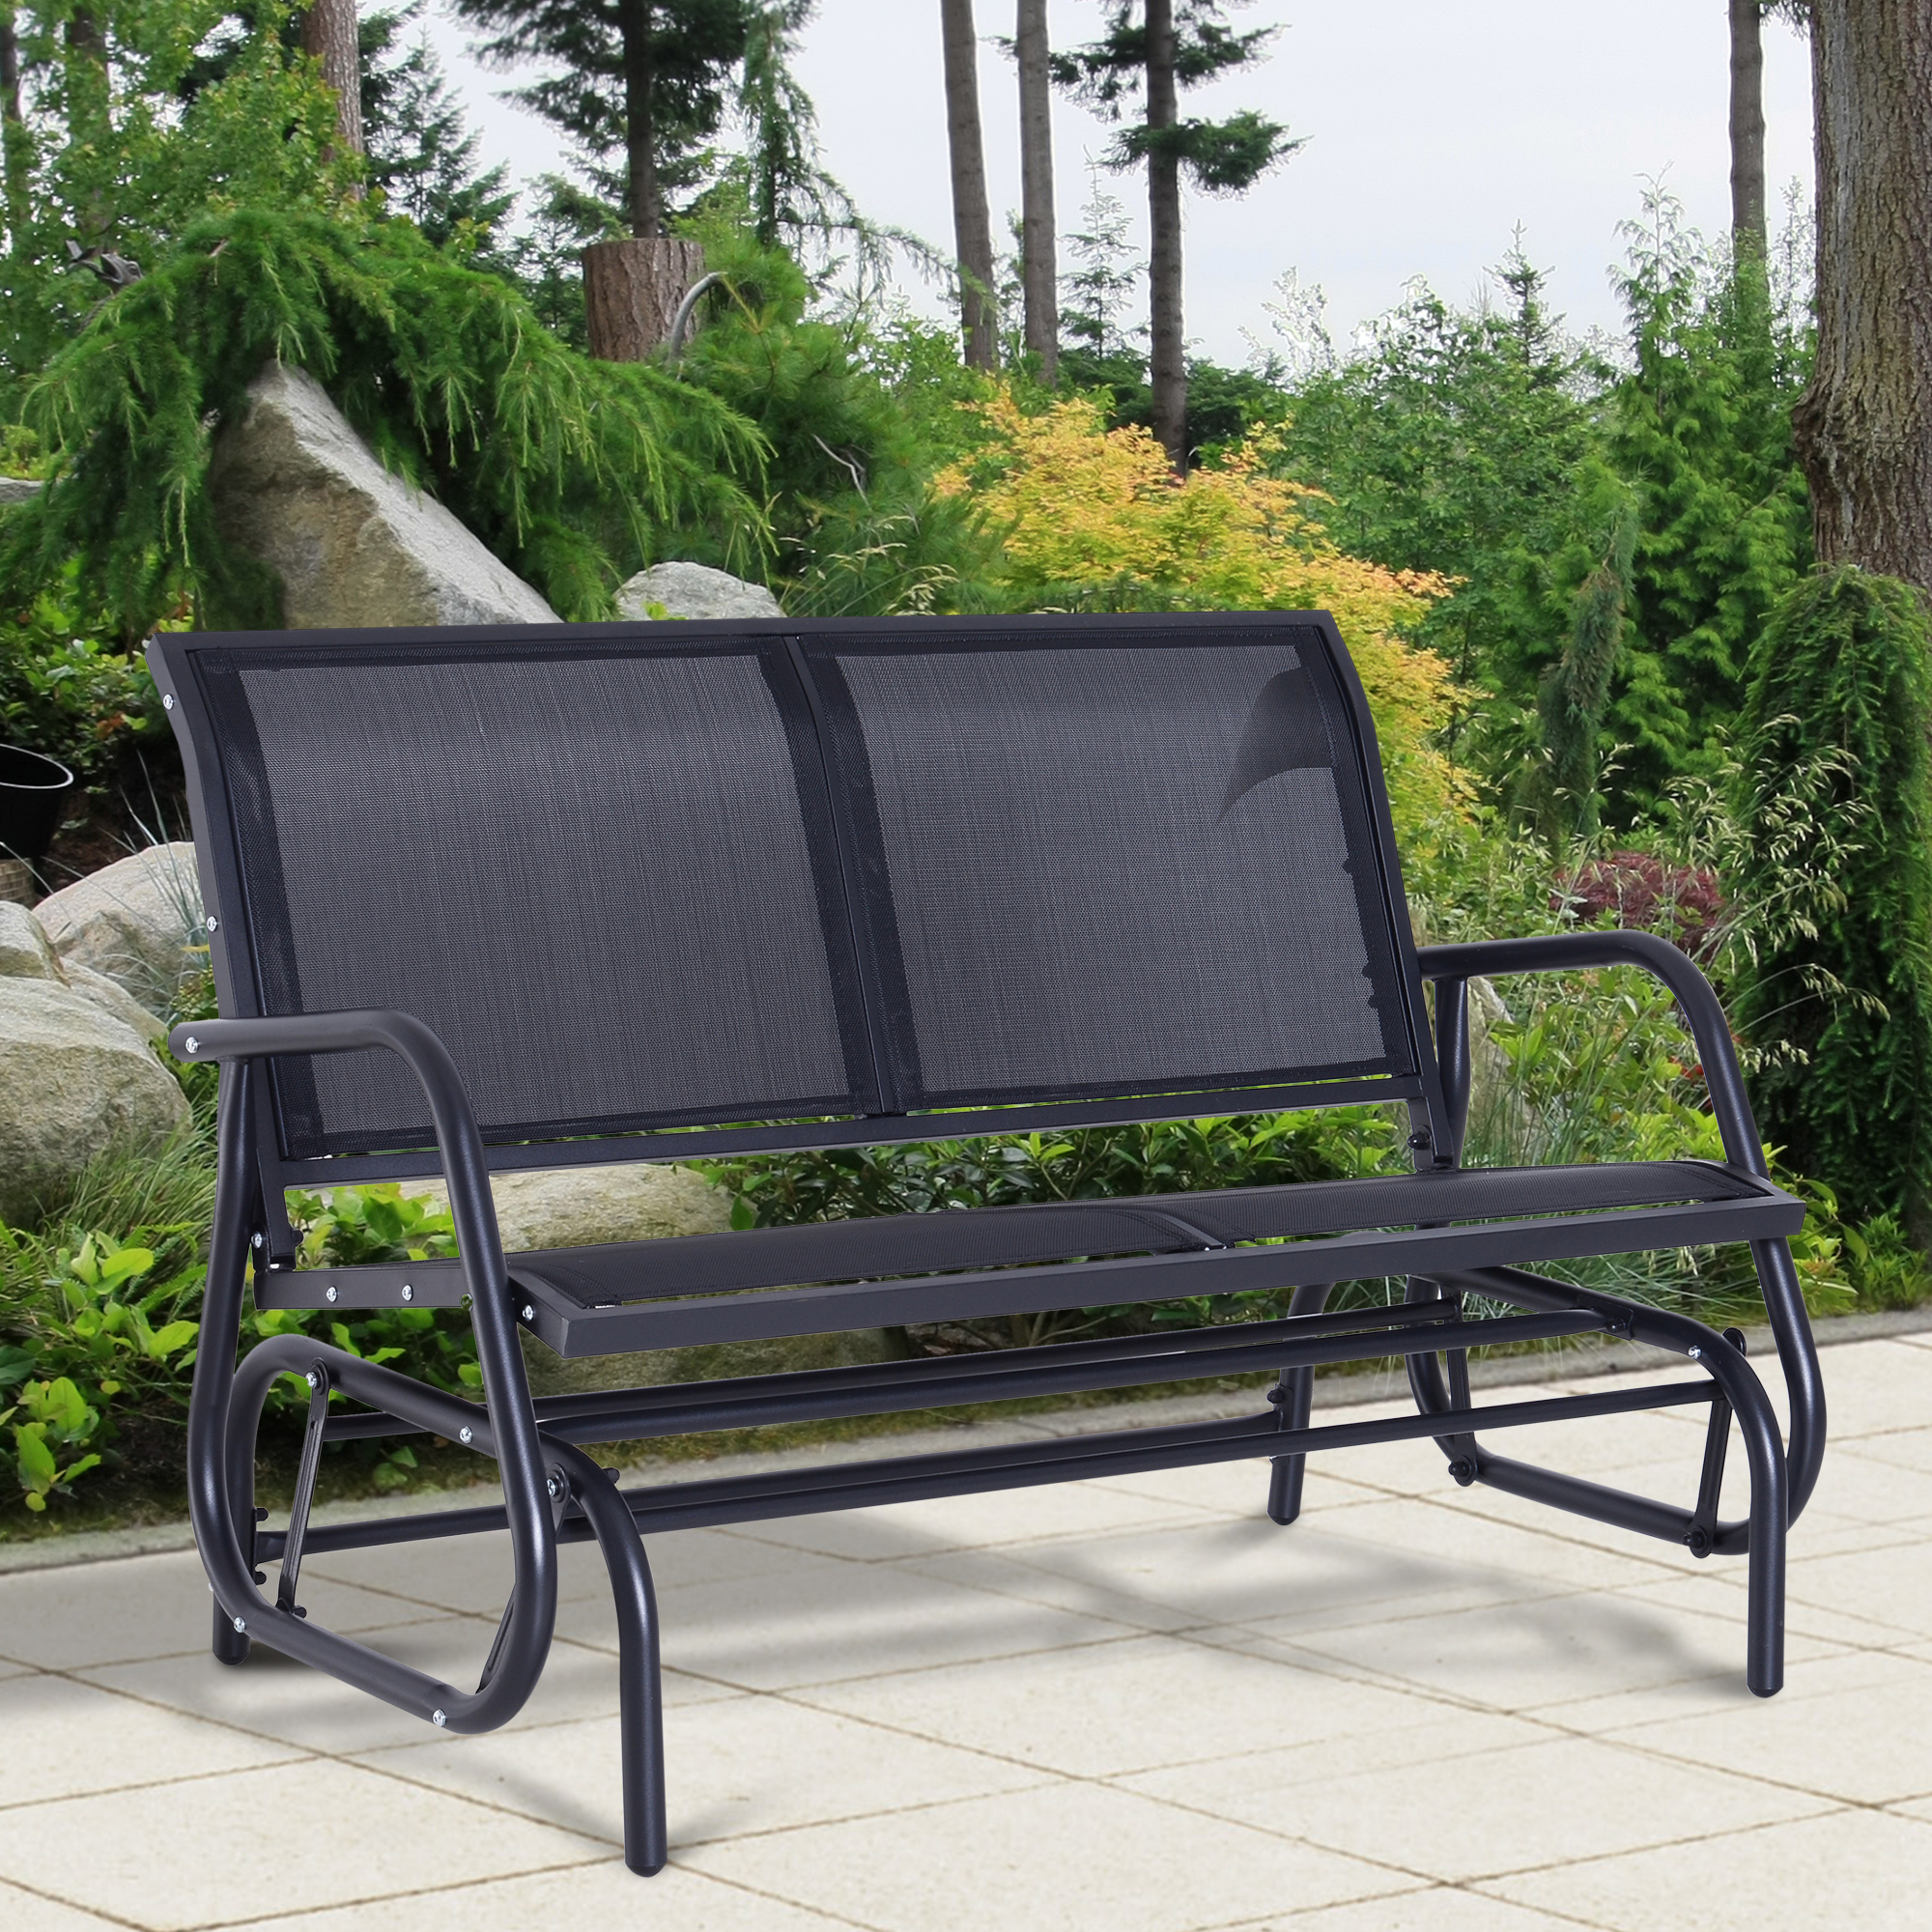 Details About Outsunny Patio Garden Glider Bench 2 Person Double Swing Chair Rocker Deck Black With Regard To Outdoor Steel Patio Swing Glider Benches (View 19 of 25)